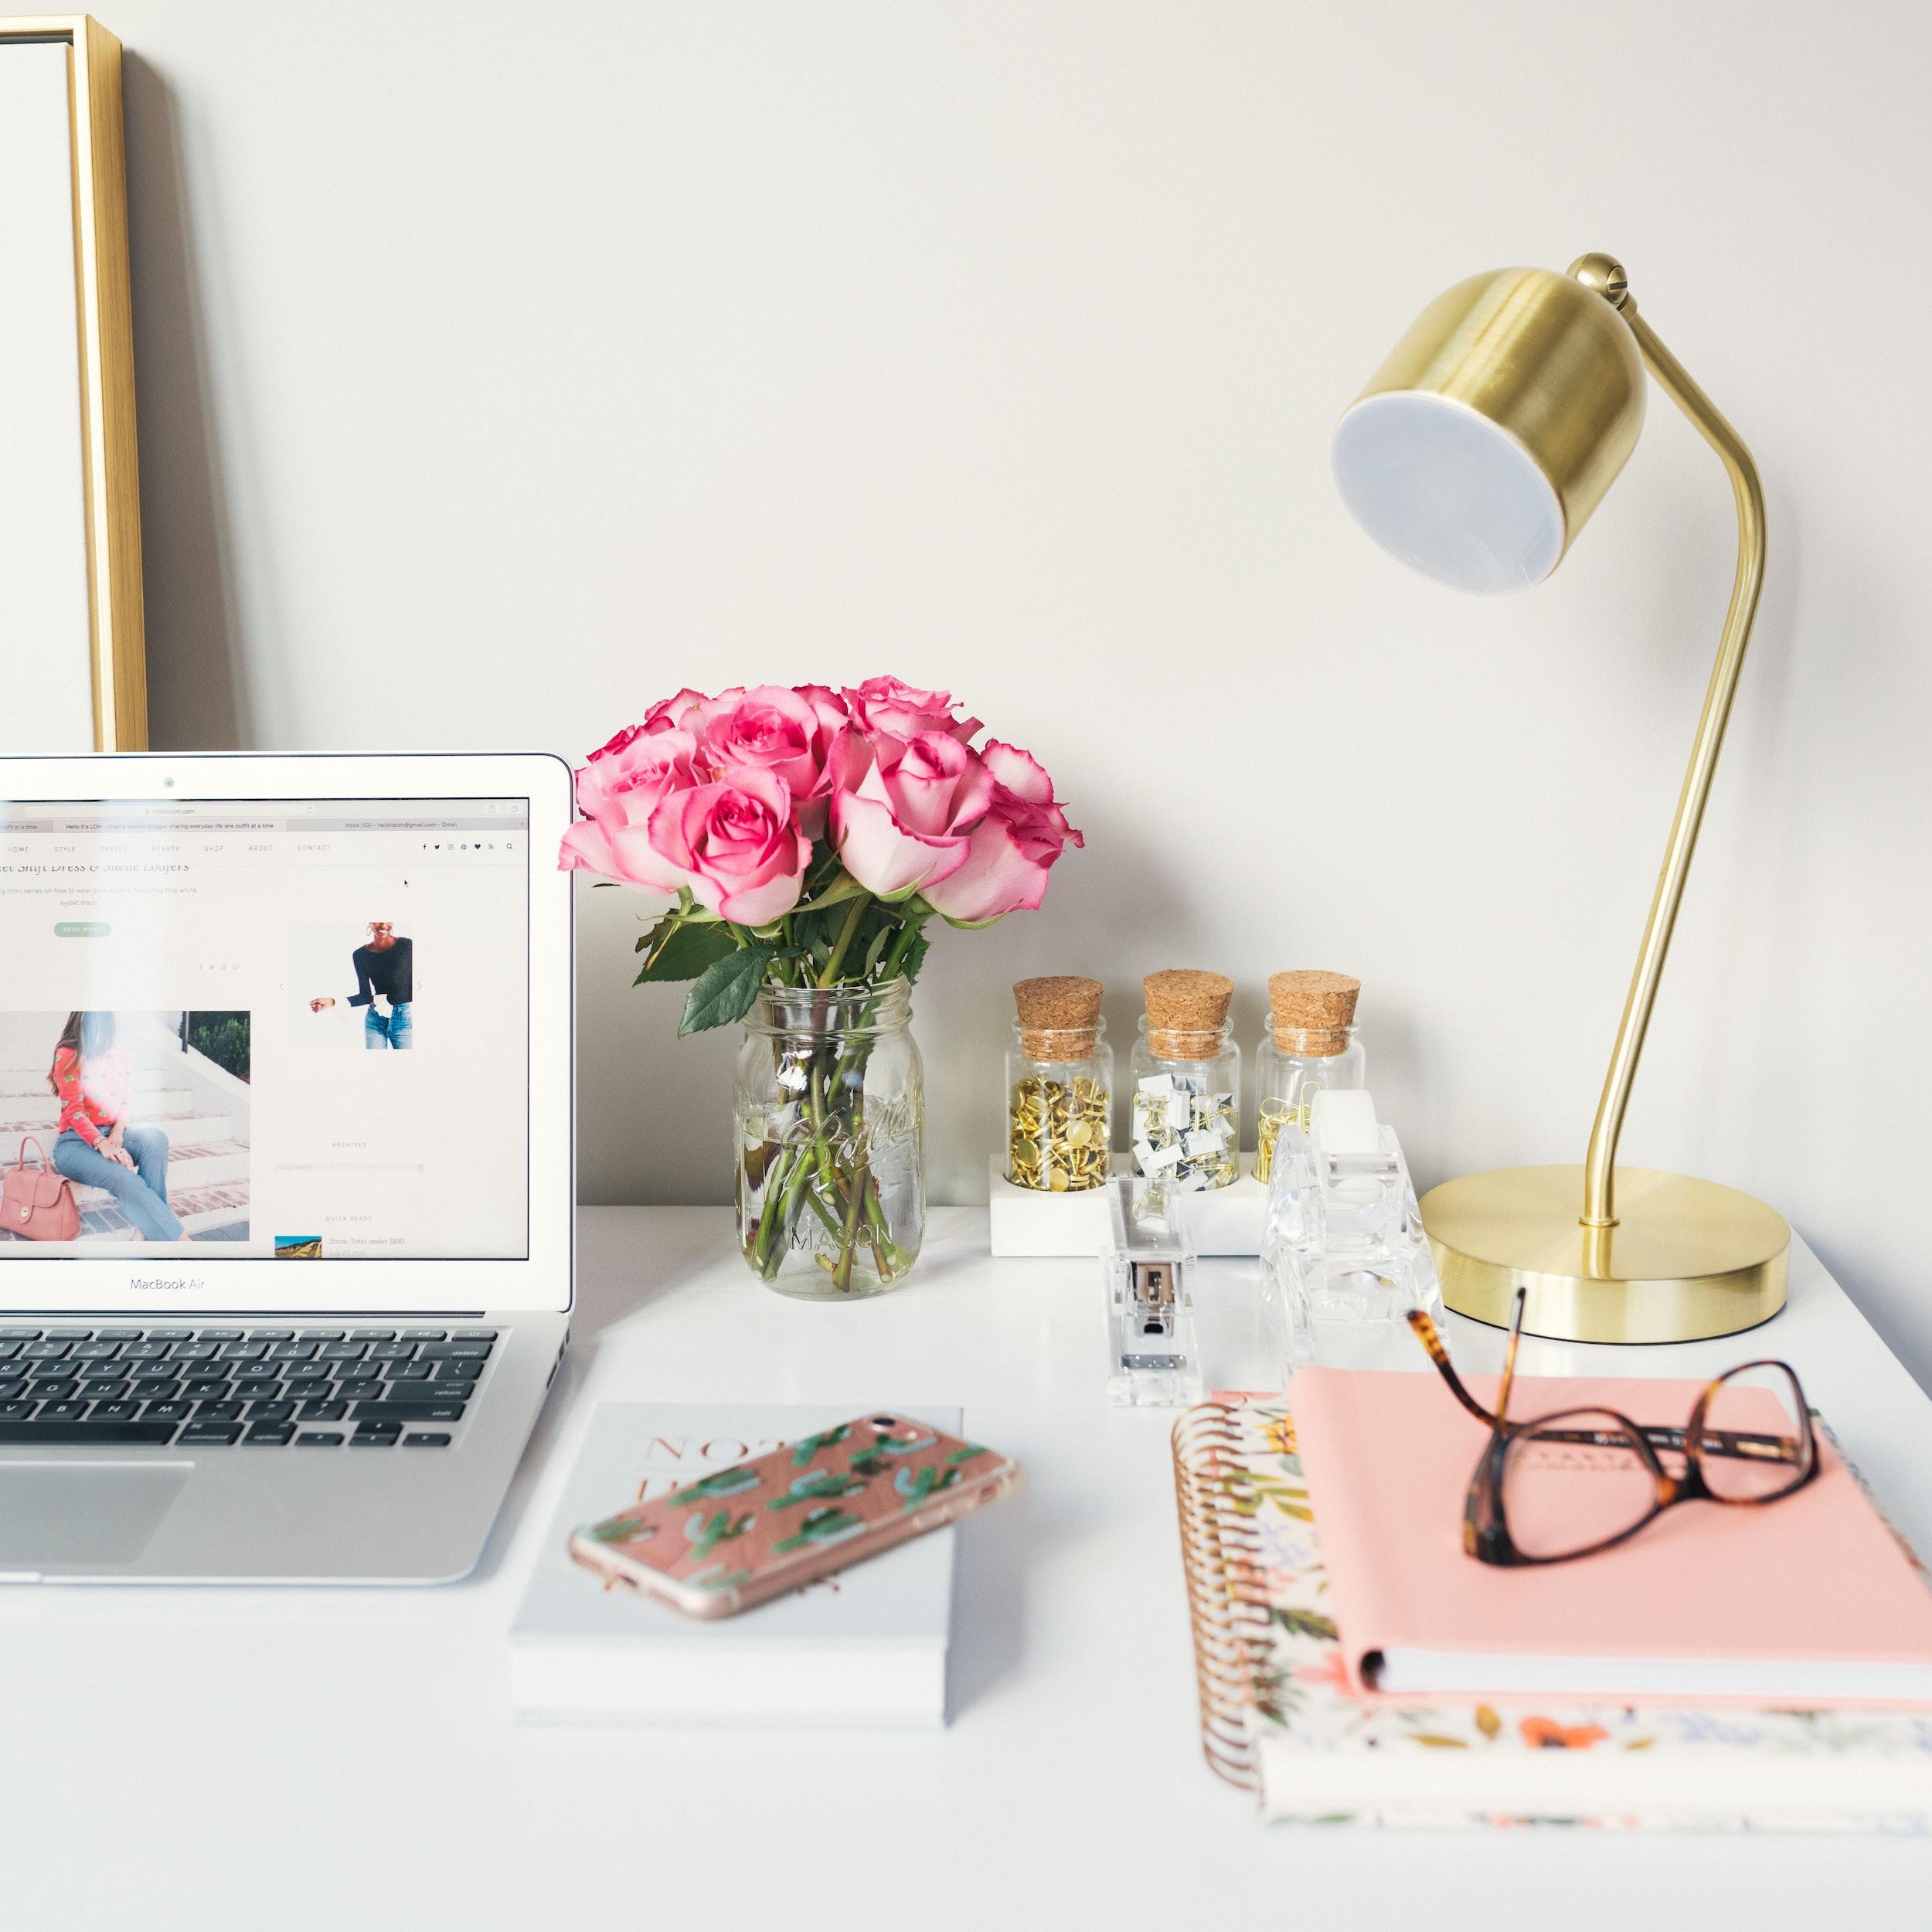 How to get out of a content creation rut - desk set up with flowers, gold lamp, books, laptop and glasses